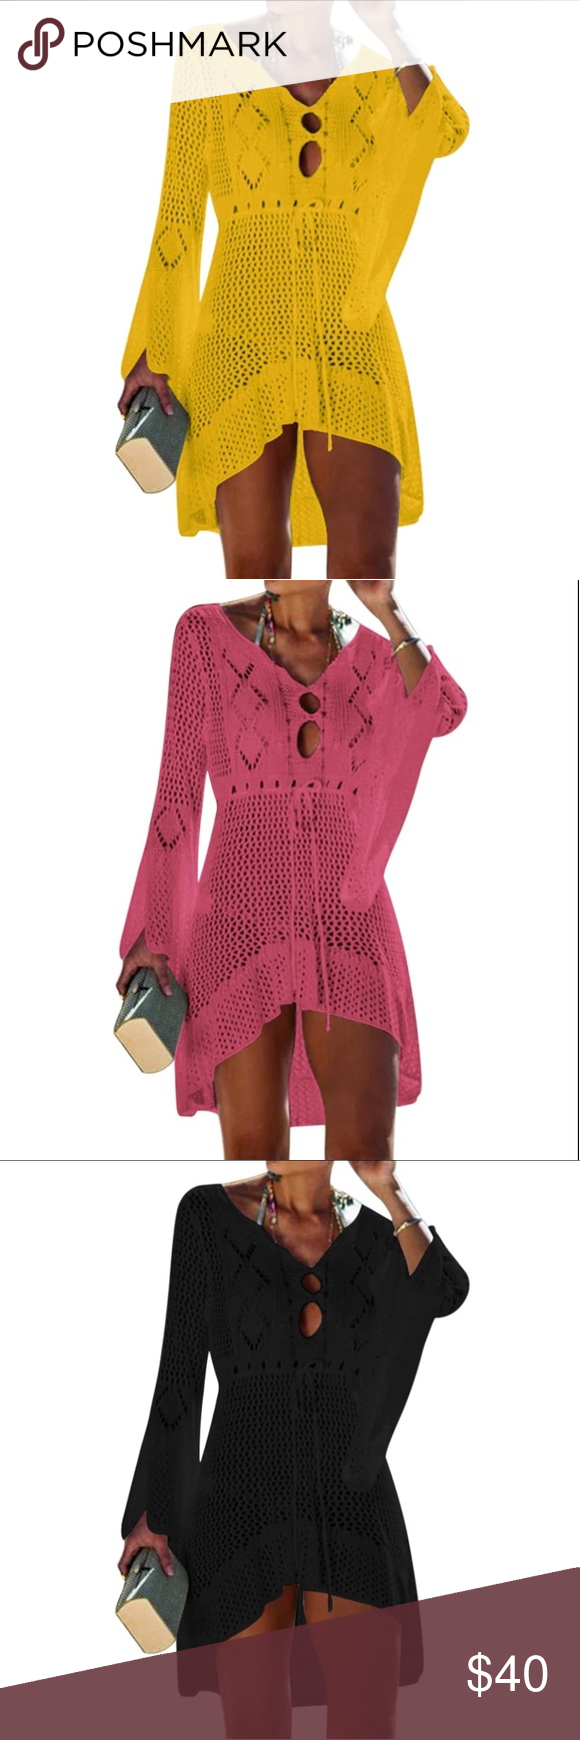 High Quality Crochet Knitted Beach Dress Summer Women Beachwear Sexy White Crochet Tunic Beach Dress Woman Swimwear Swimsuit Cover-ups Bikini Cover Up 100% Polyester  Lightweight  Low ball offers will be Totally ignored  Please send me your reasonable offer  Limited Edition - All Colors available 1 pc AnkarasBest Swim Coverups #crochetbeachdress